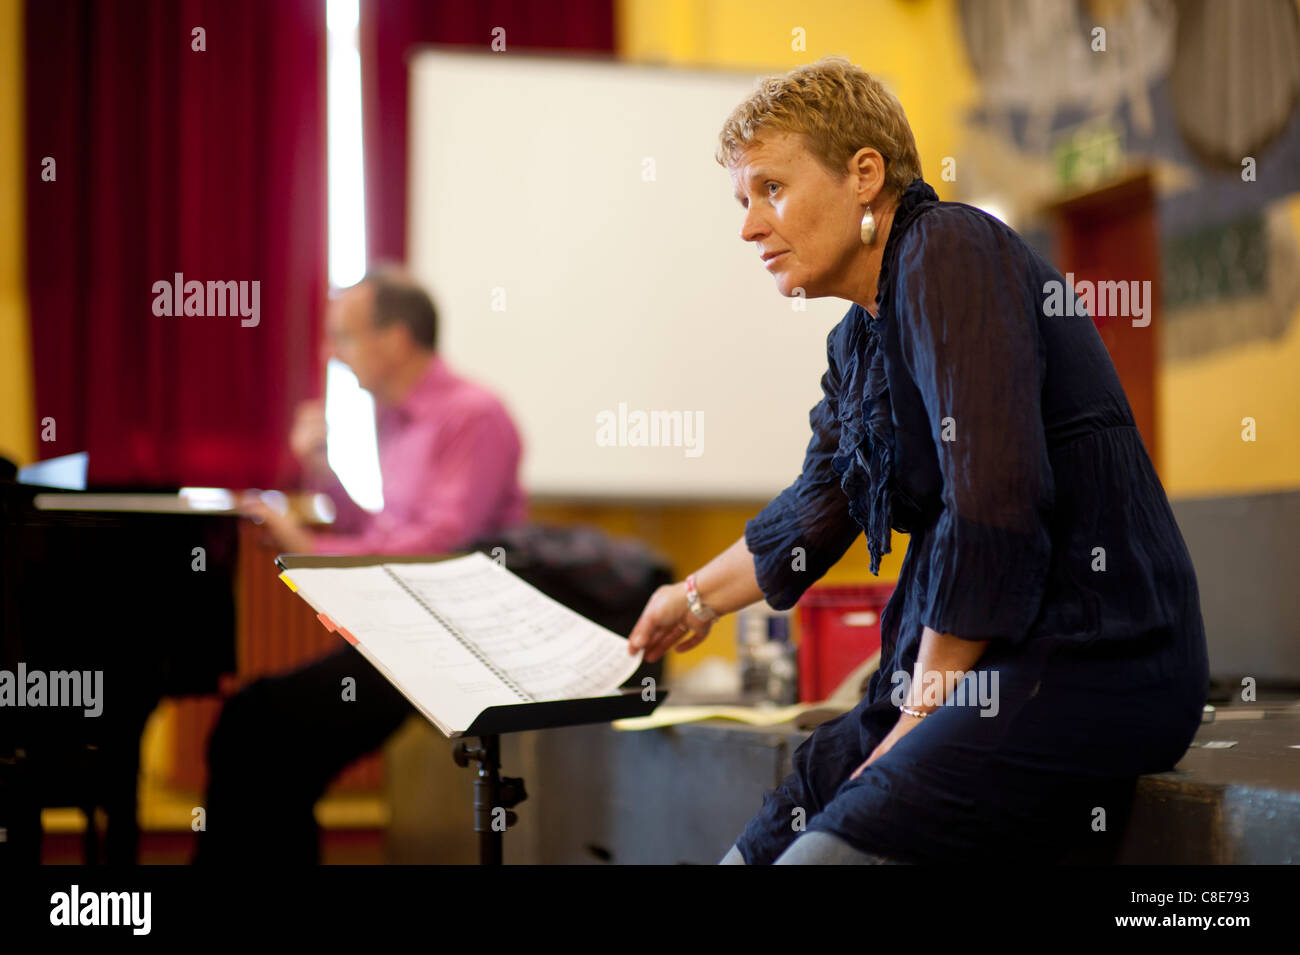 Clare Williams directing rehearsals for Mid Wales Opera production of Noye's Fludde by Benjamin Britten, Wales - Stock Image